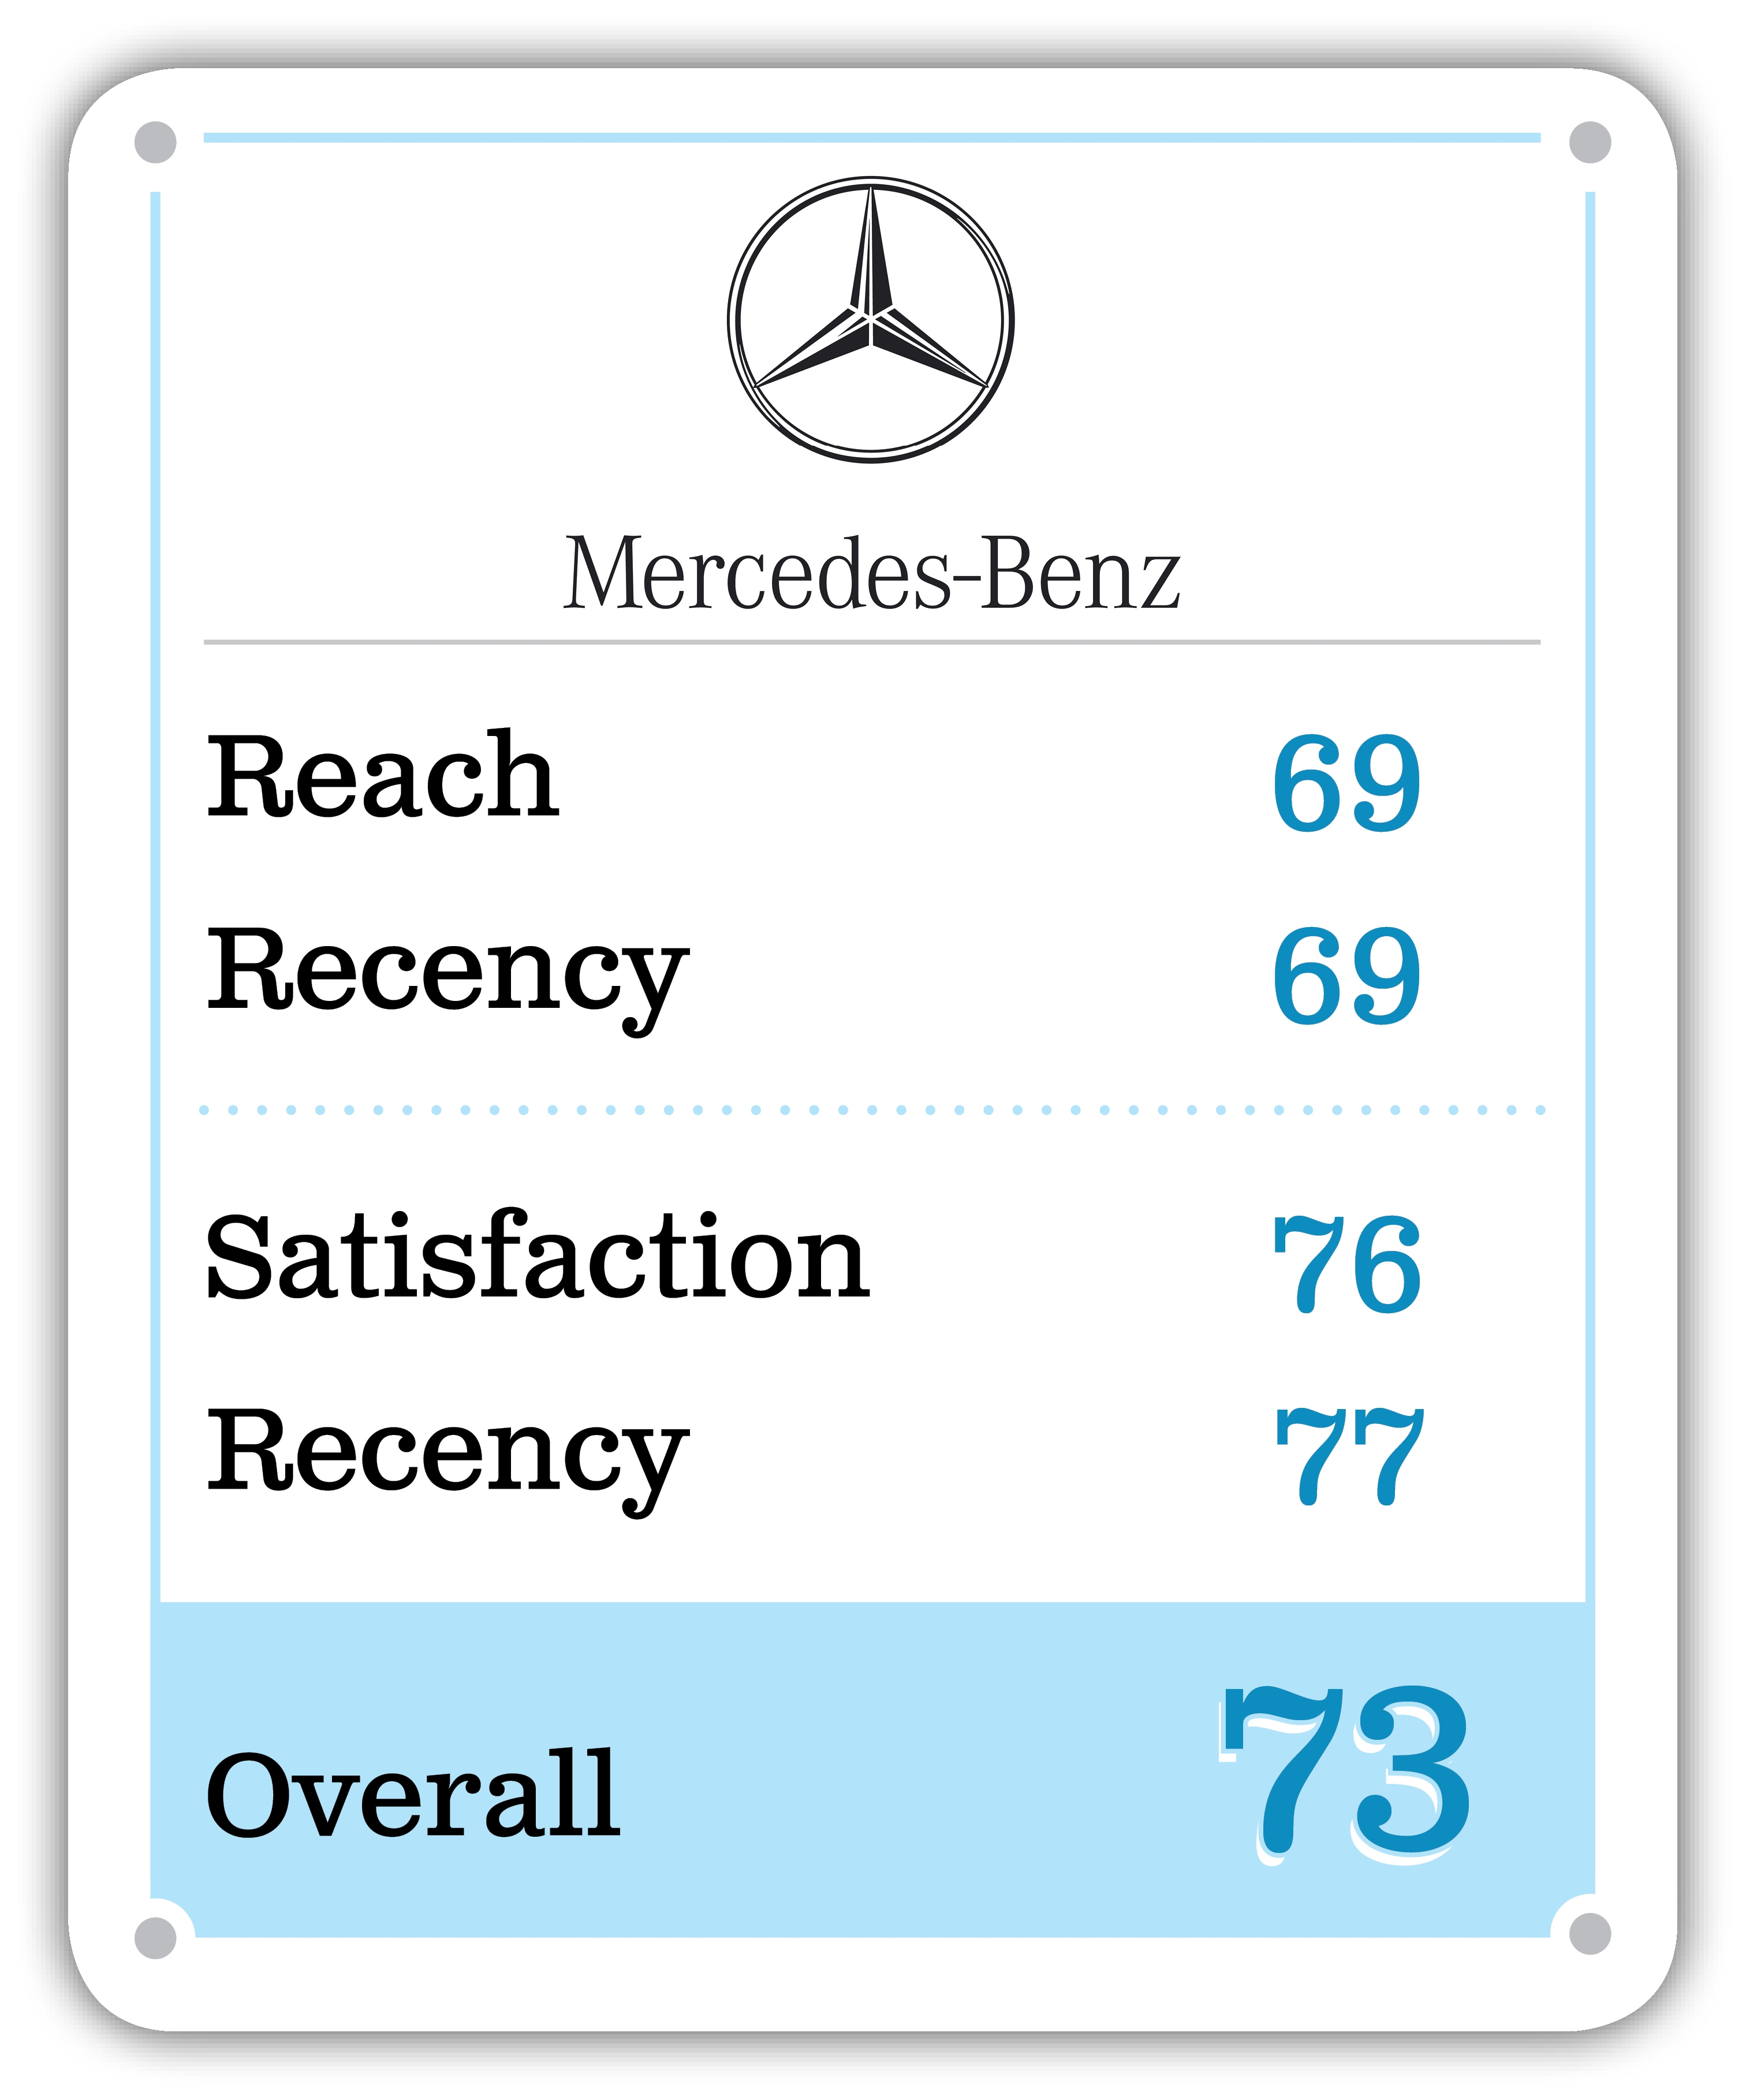 Mercedes-Benz score card. Reach: 69. Recency: 69. Satisfaction: 76. Recency: 77. Overall: 73.